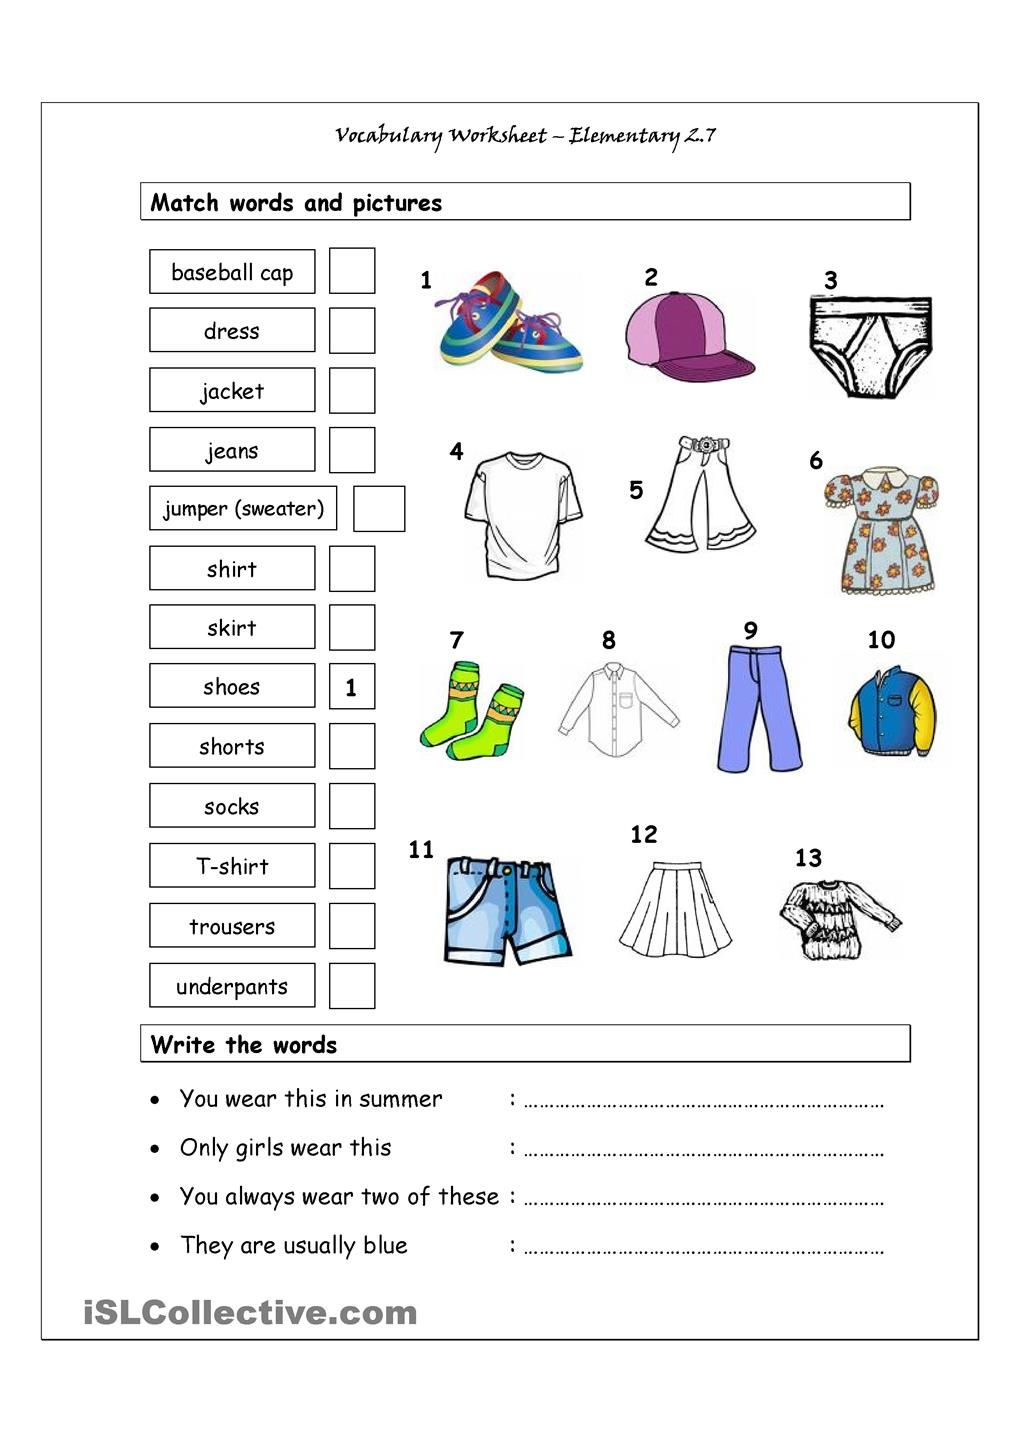 Vocabulary Matching Worksheet Elementary 2.7 (CLOTHES